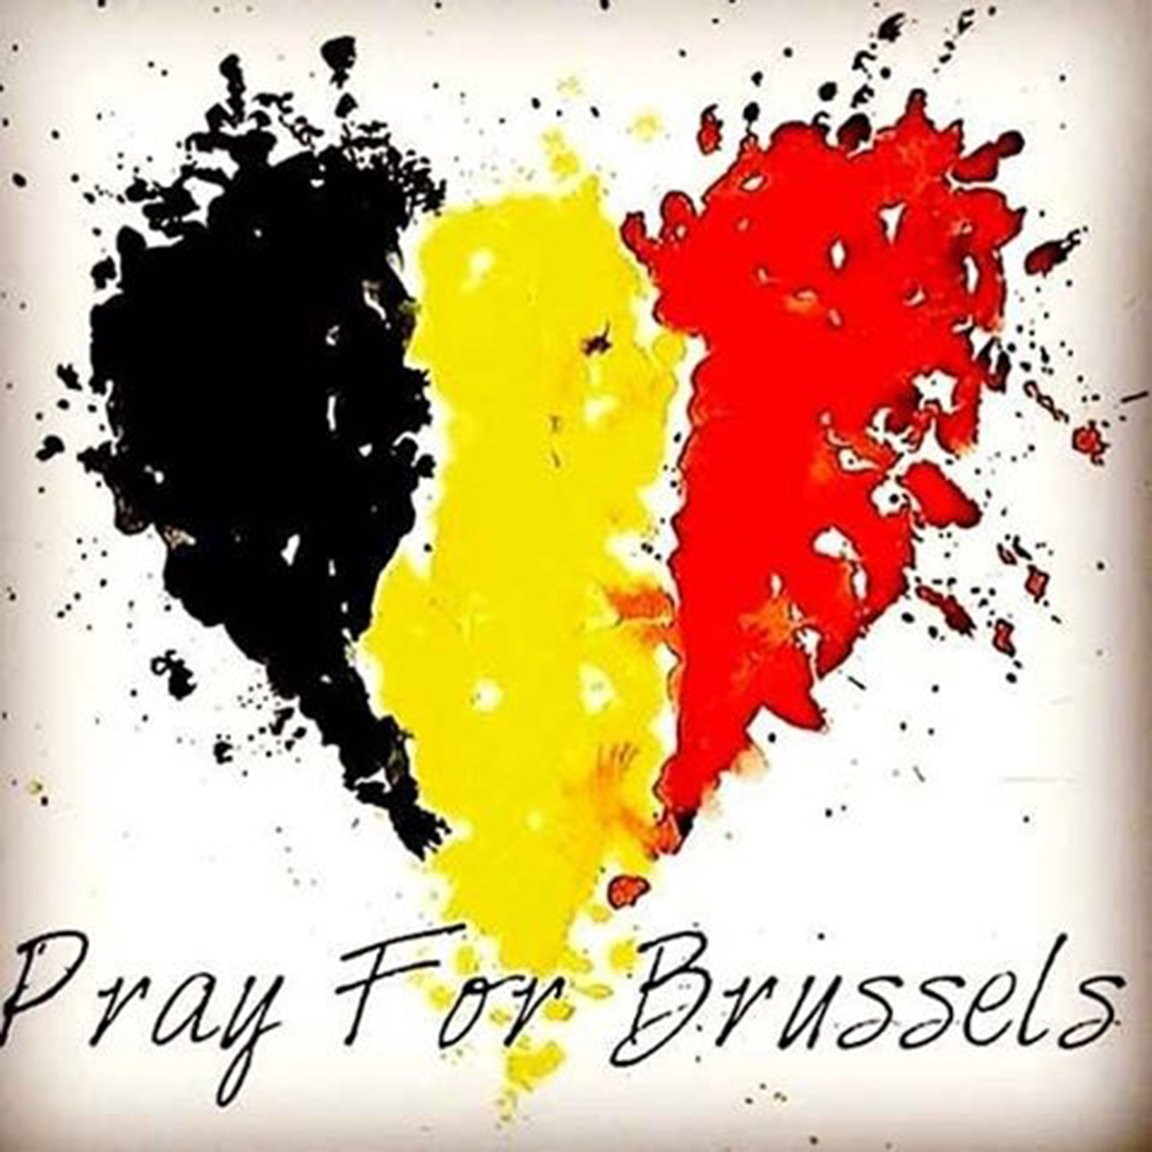 Sending love & prayers to the people of Belgium. #prayforbrussels https://t.co/TP6Iho64Fl